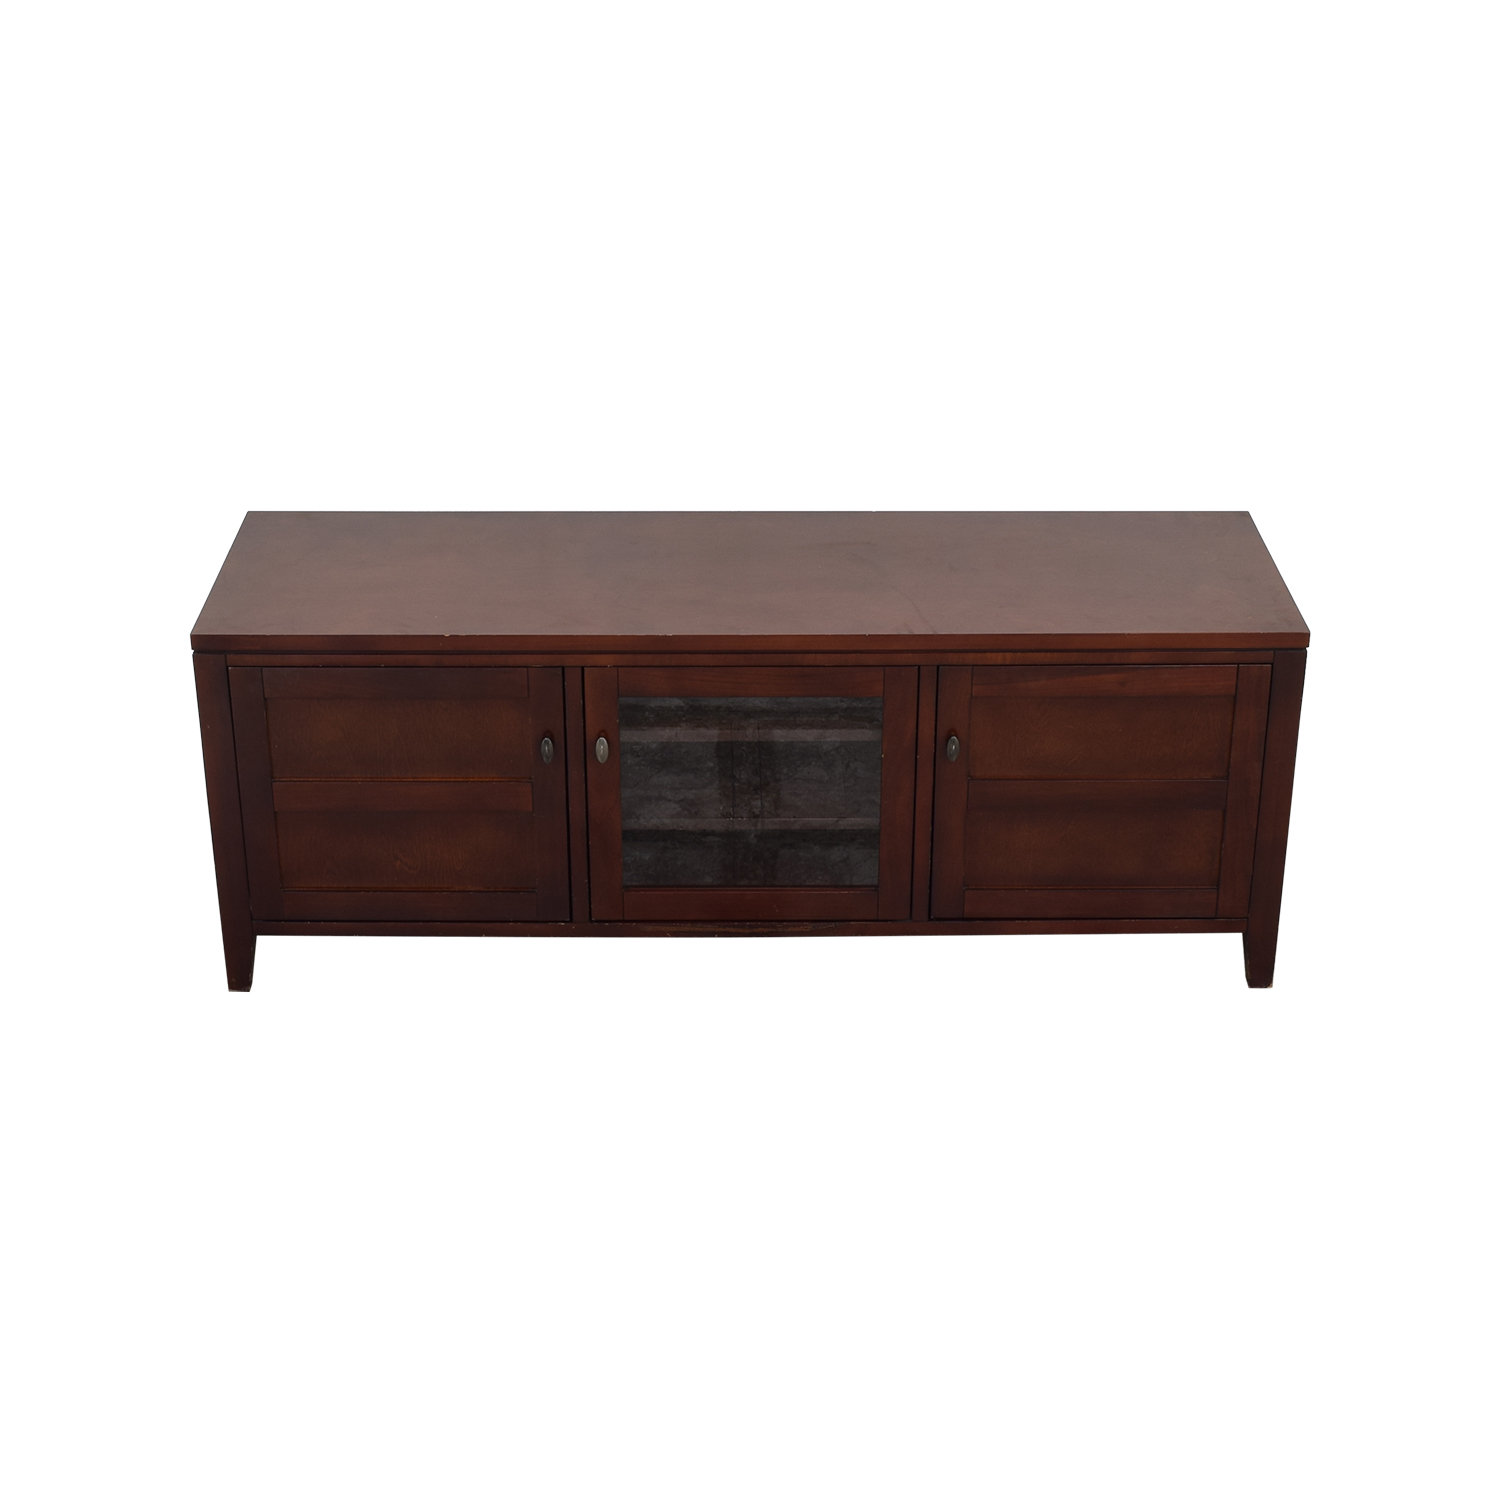 shop Crate & Barrel Media Console with Cabinets Crate & Barrel Media Units